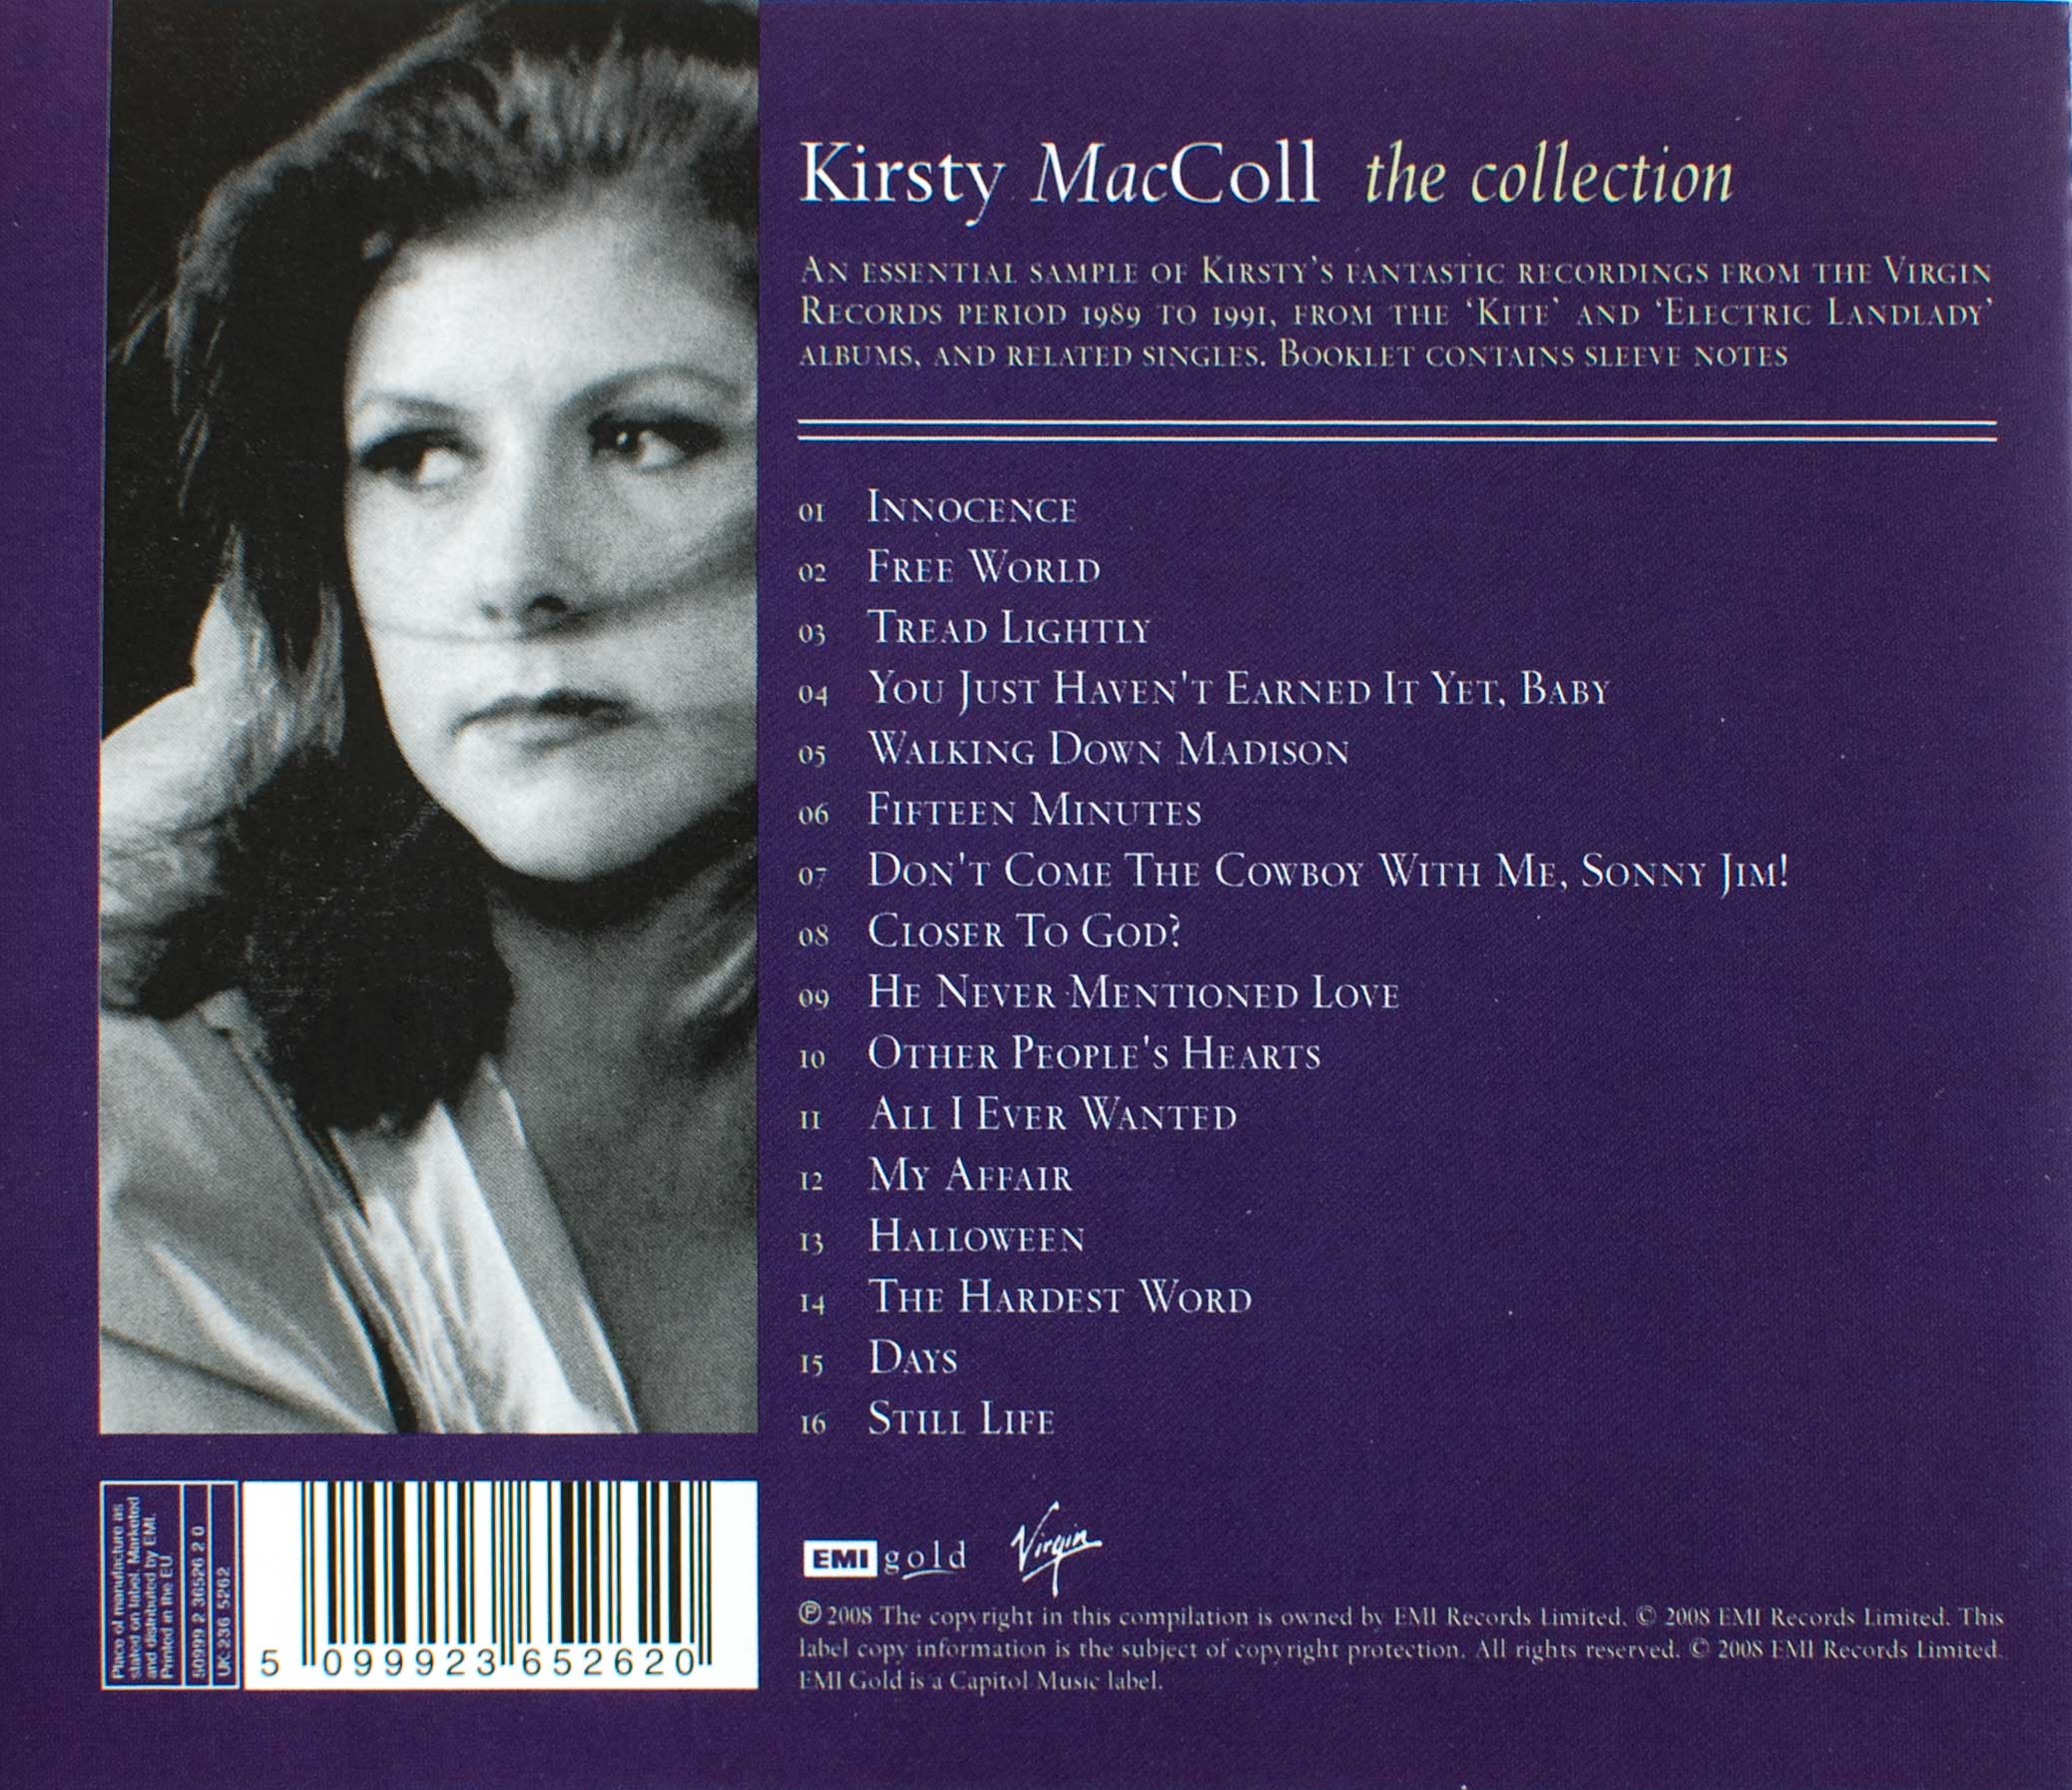 The Collection (2008 CD) back cover